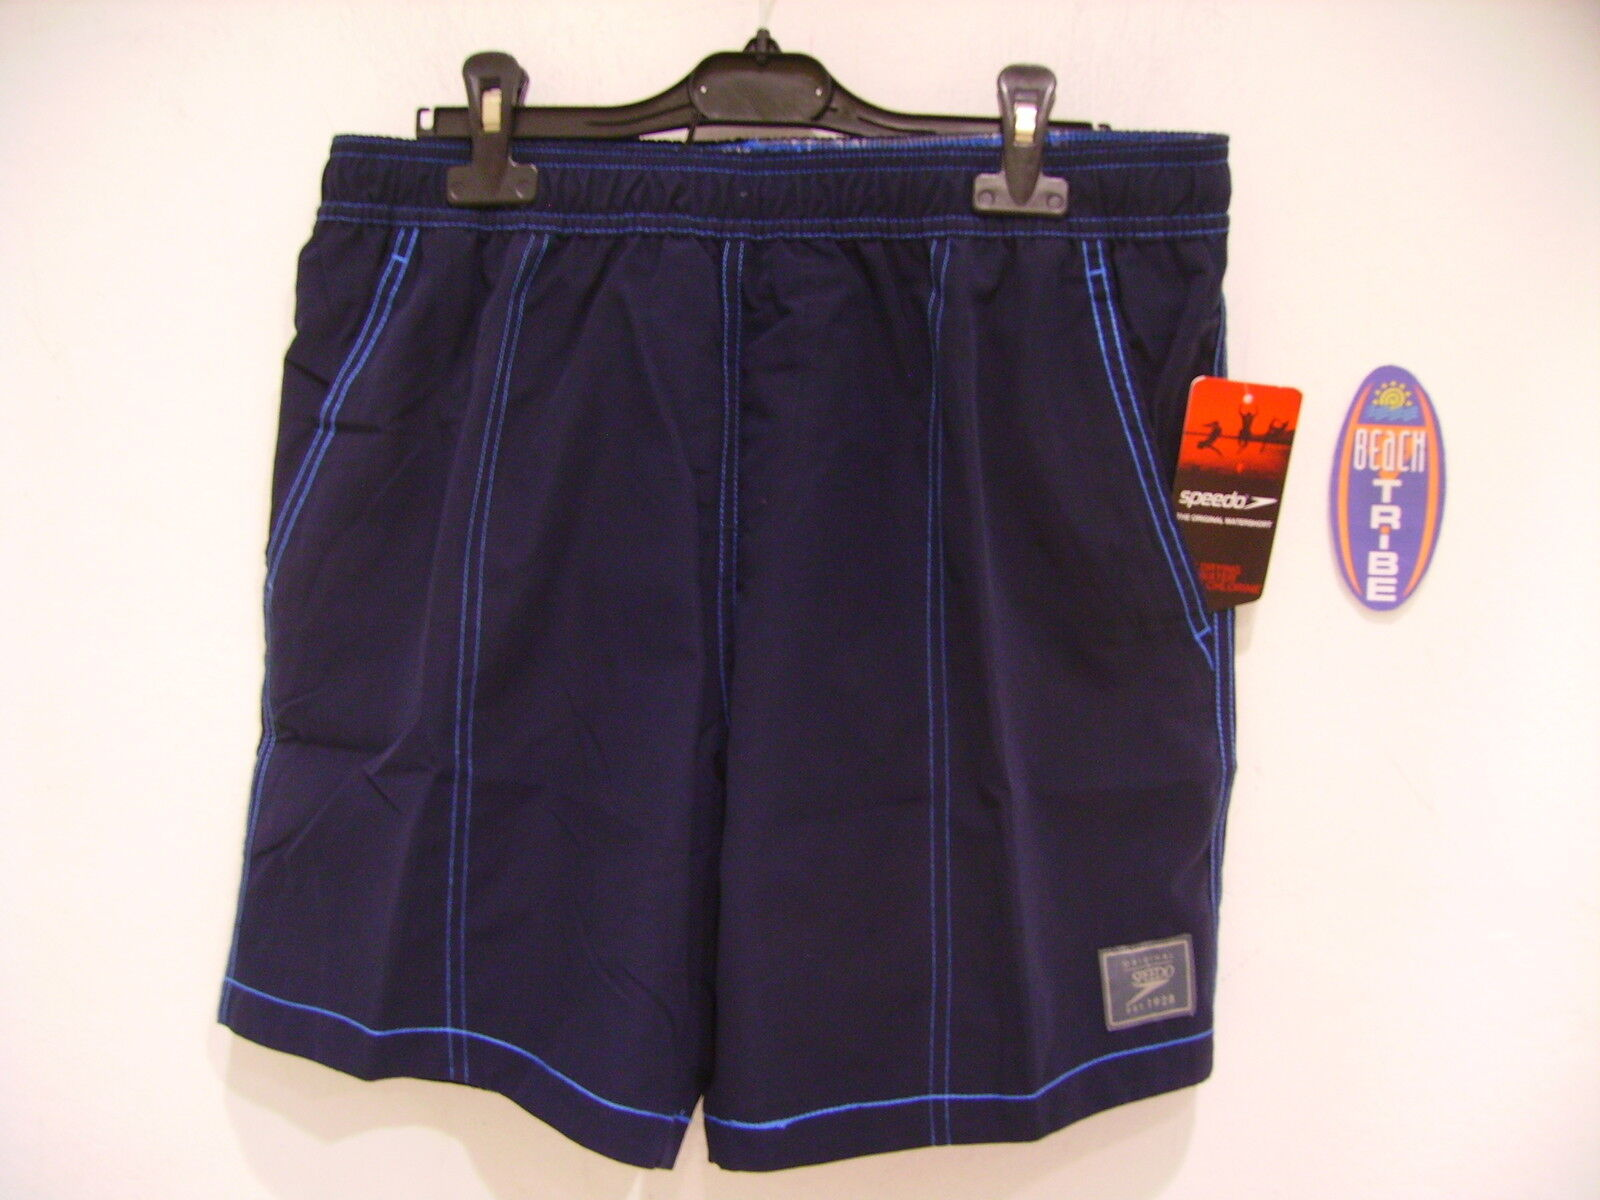 SPEEDO BOARDSHORT SHORTS SEA COSTUME CHK TRIM LEIS 809264A137 NAVY blueE M